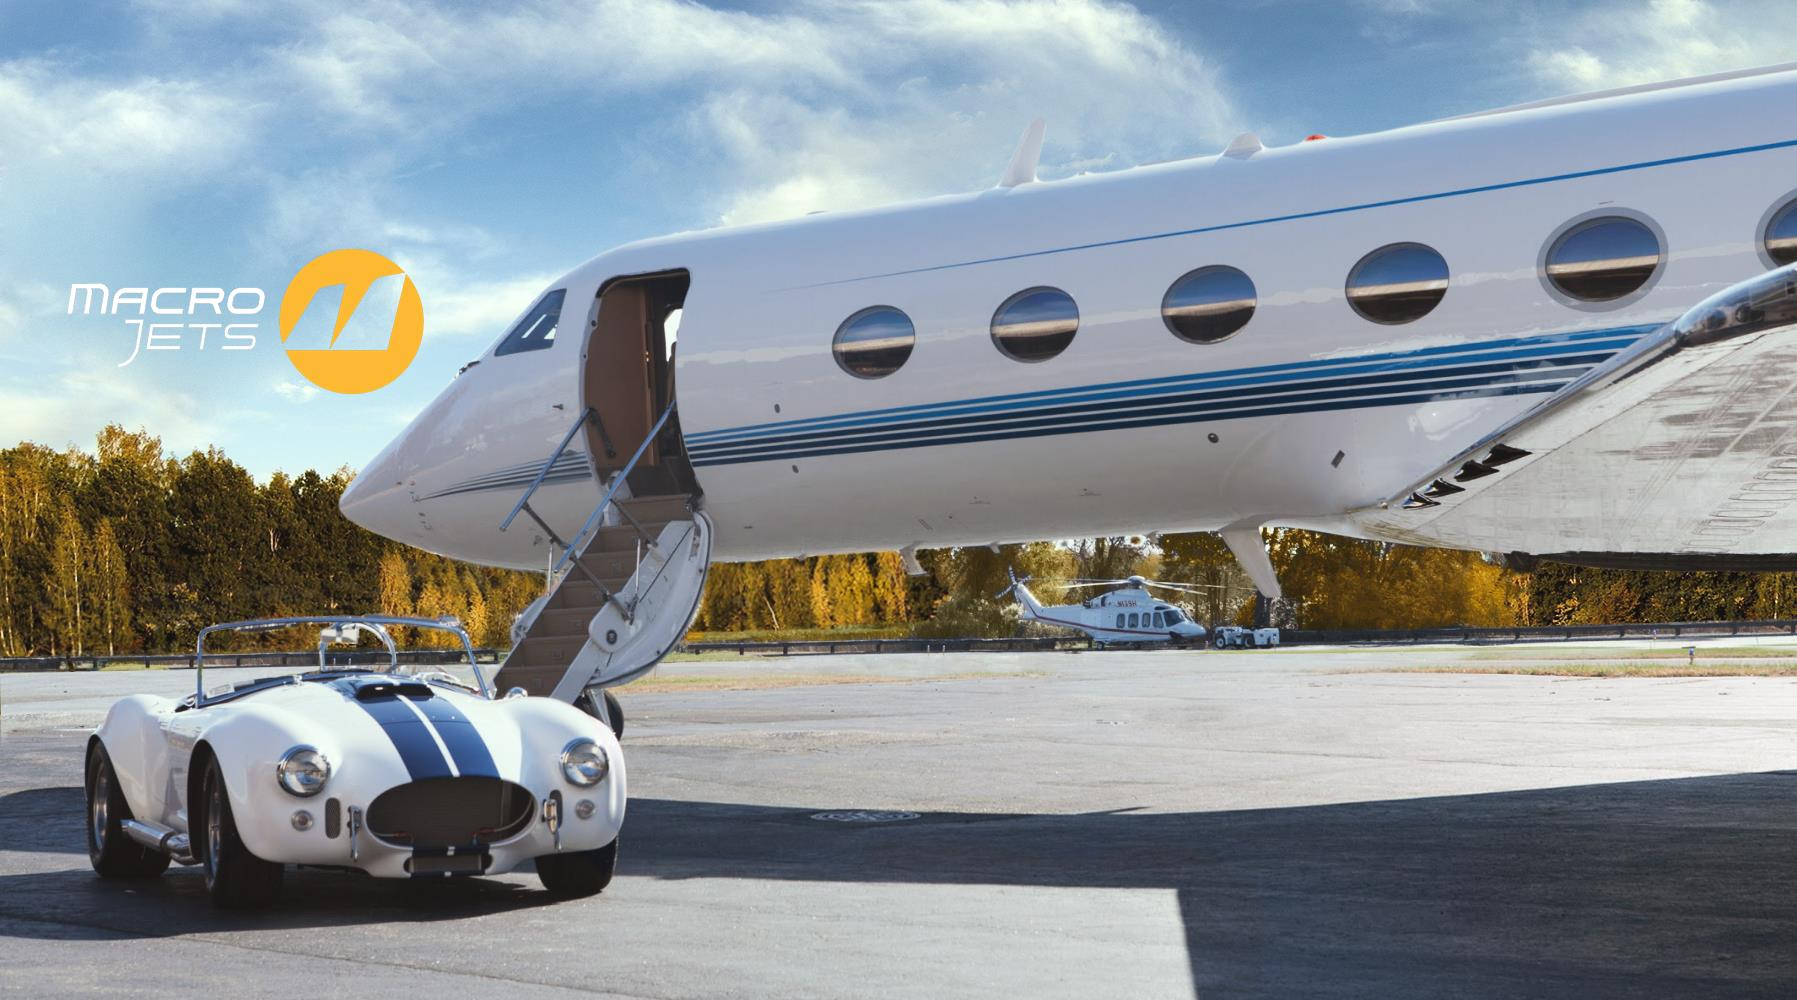 Macro Jets Launches A No Cost Private Jet Full Ownership Program That Profits